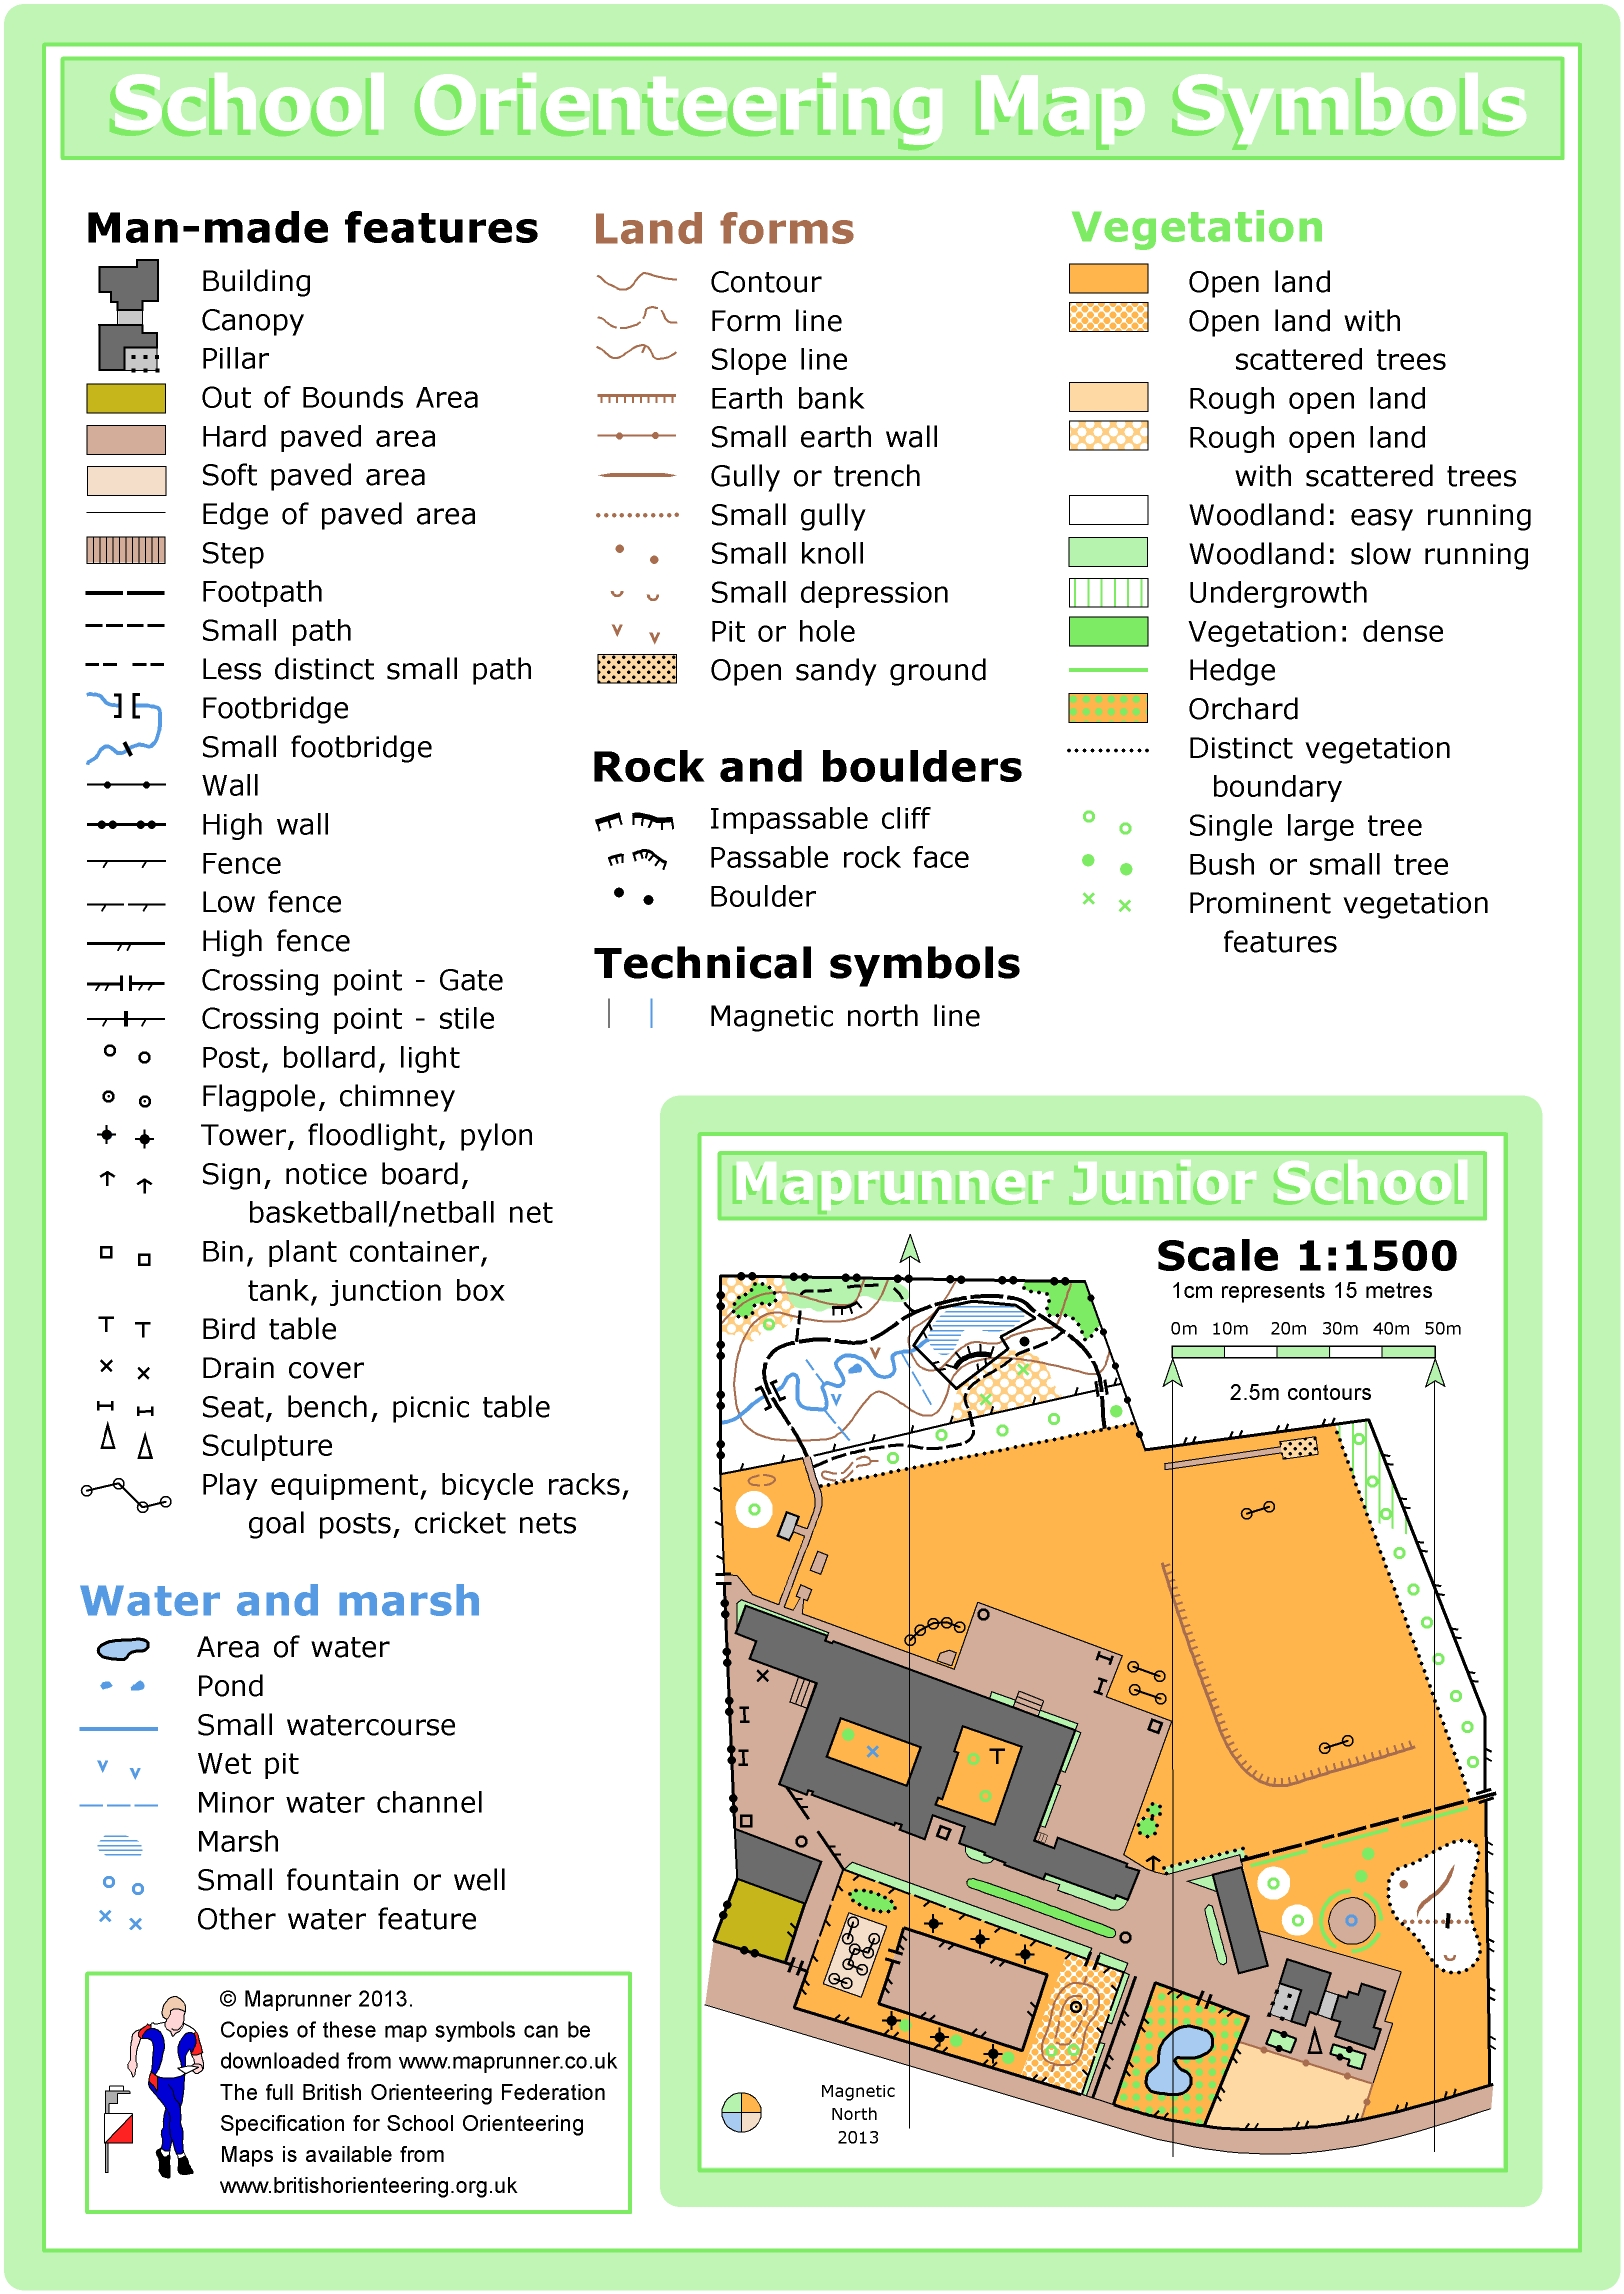 http://www.maprunner.co.uk/wp-content/uploads/resources/Maprunner-schools-map-symbols.jpg